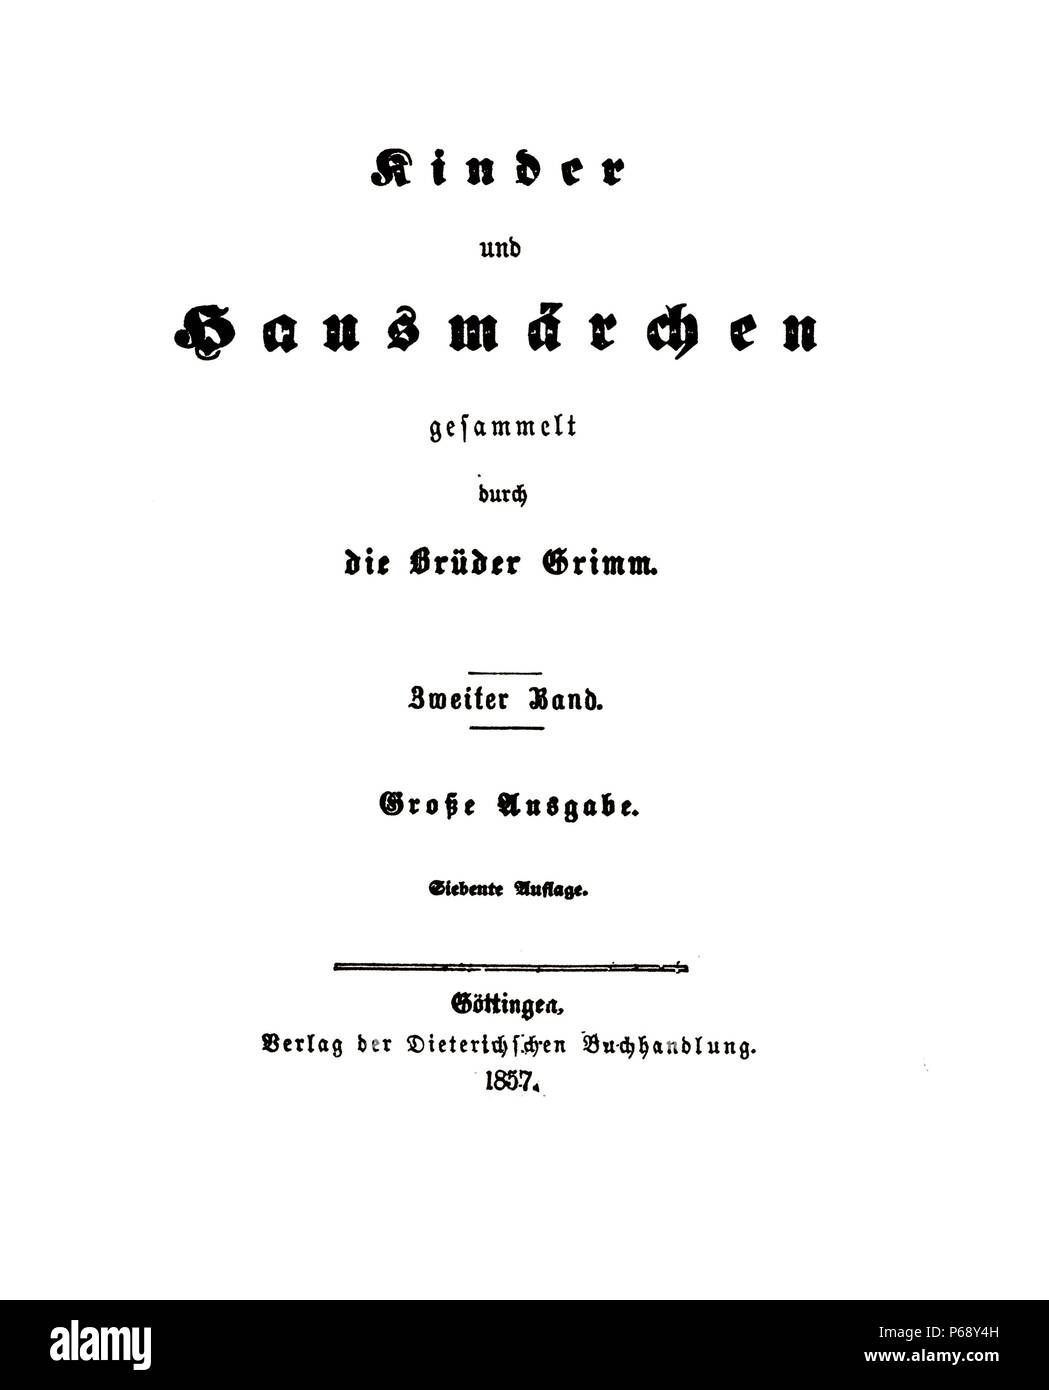 19th Century Edition of the Grimm Brothers folk tales, Children's and Household Tales. Published 1812. Dated 1857 - Stock Image